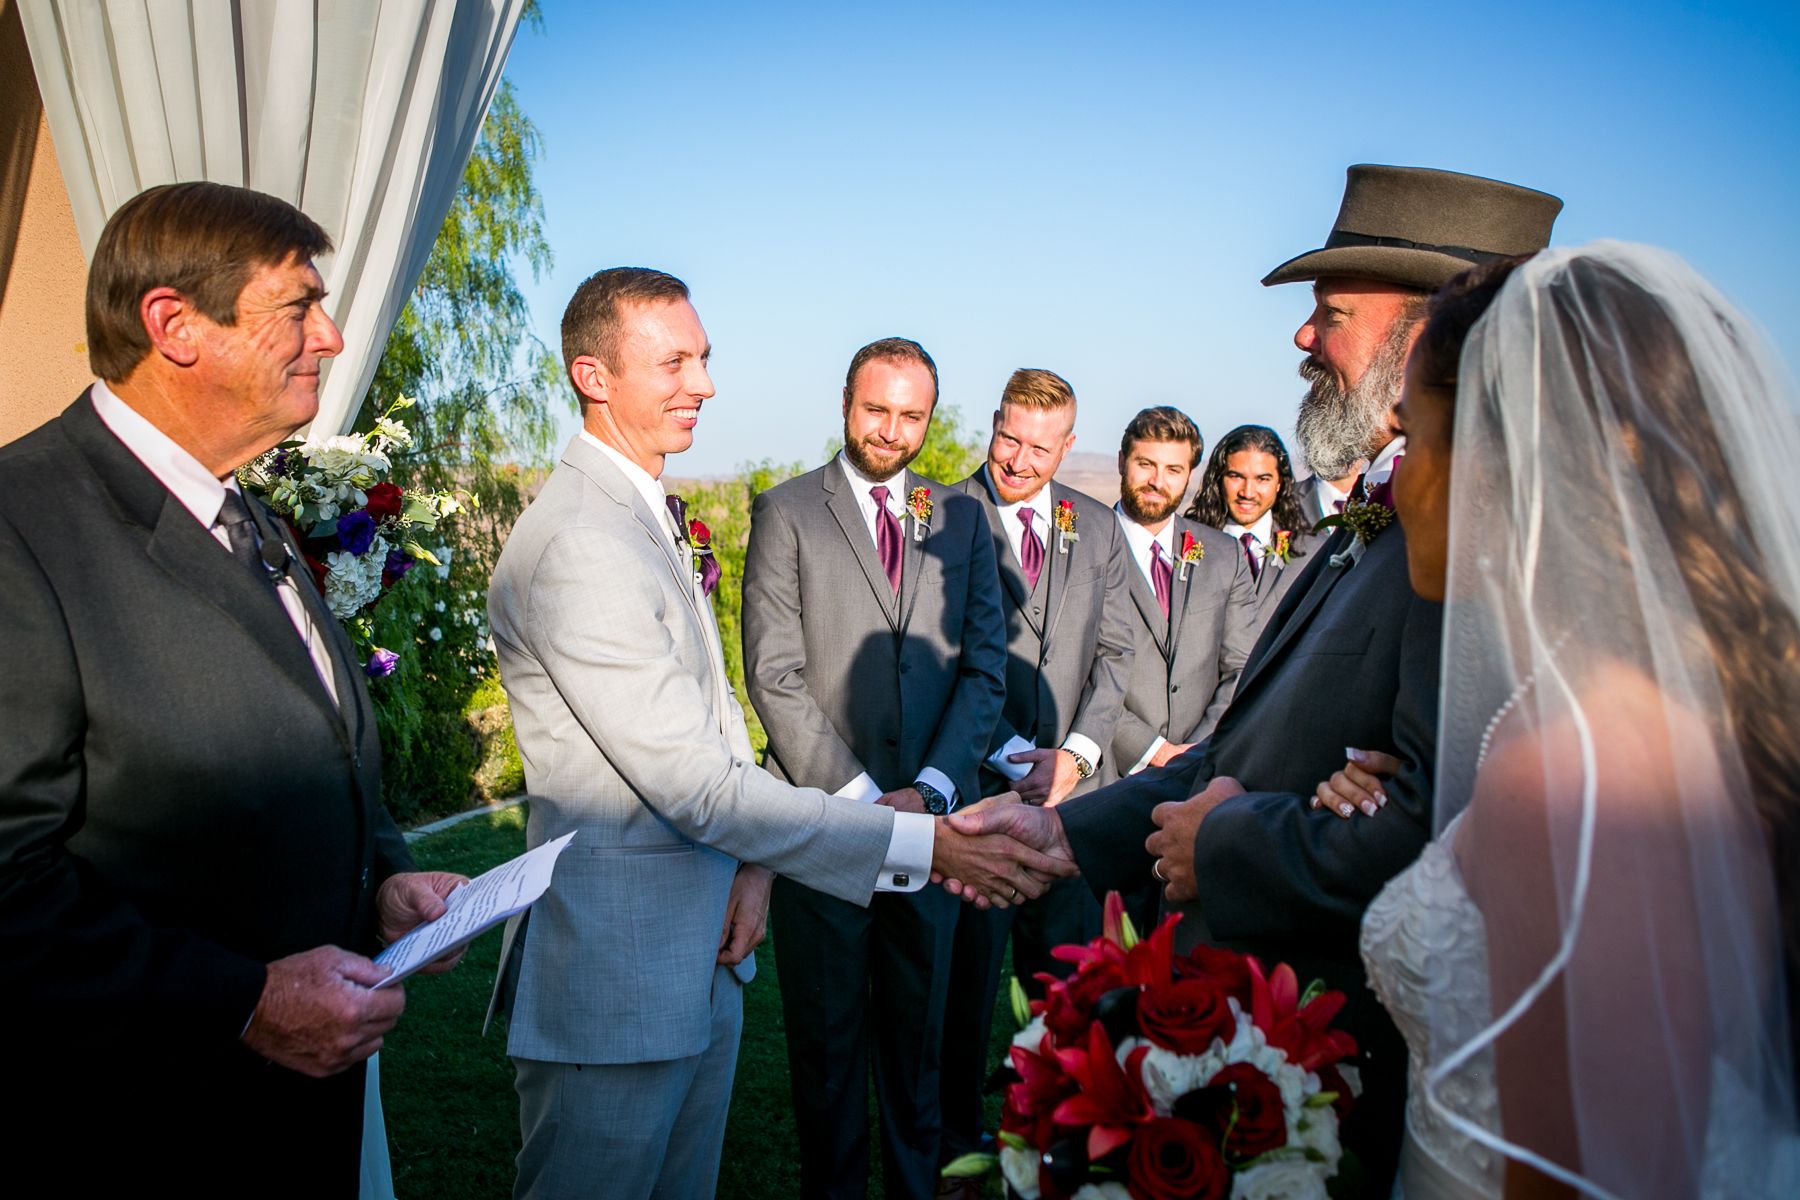 father of bride shakes groom's hand during ceremony wedding at the champion's club at the retreat